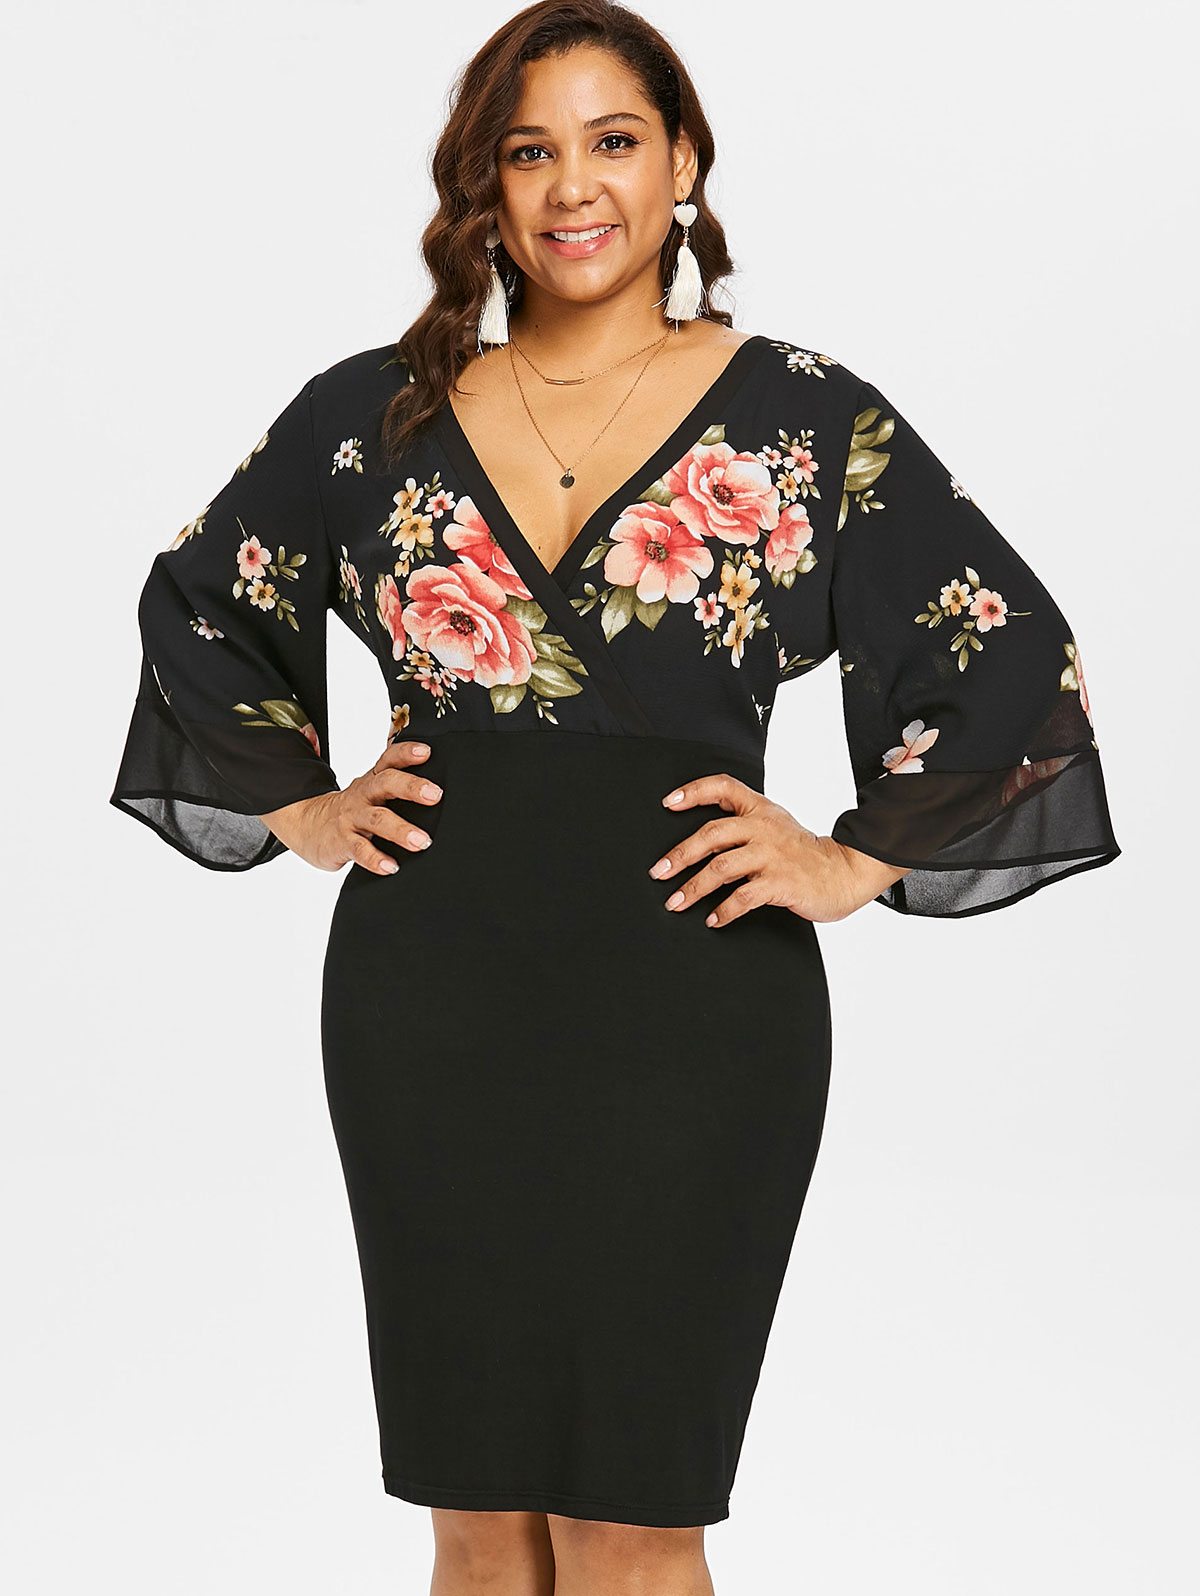 US $14.58 39% OFF Wipalo Plus Size Bell Sleeve Low Cut Floral Bodycon Dress  Women Harajuku 3/4 Sleeve Summer Dresses Party OL Dress Vestidos 5XL-in ...